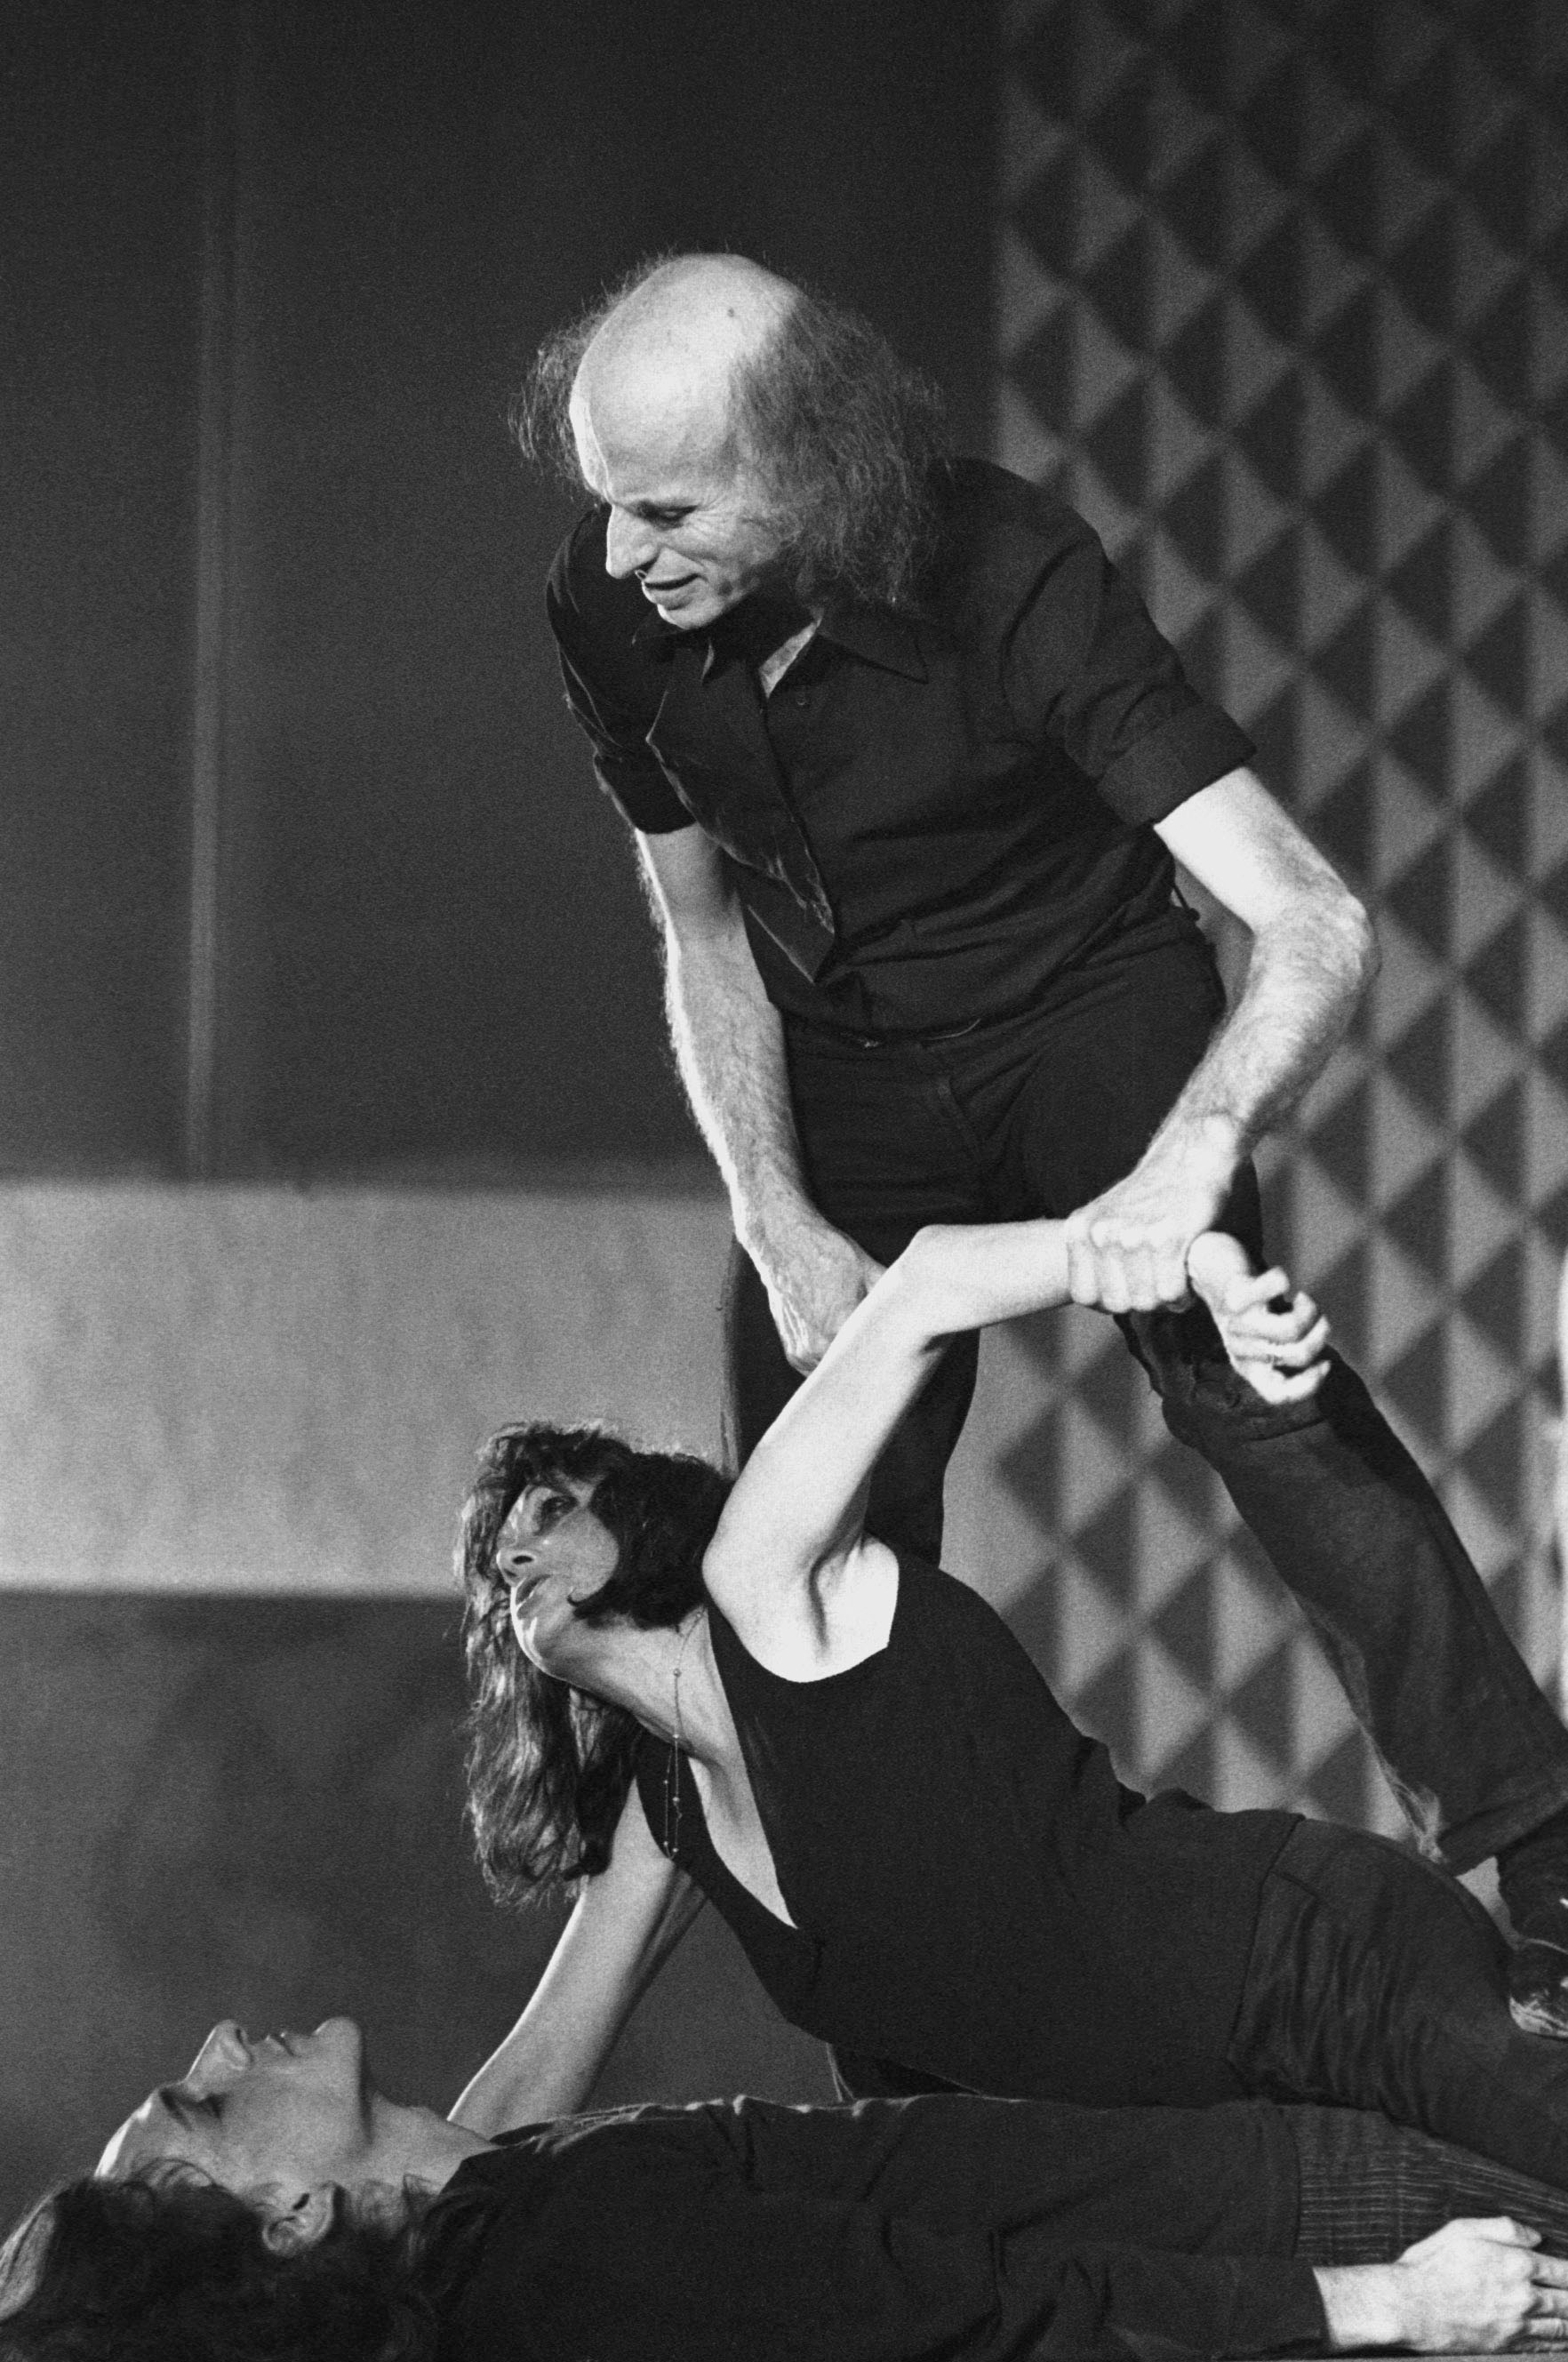 Julian Beck (top) and Judith Malina (middle) rehearsing at The Living Theatre